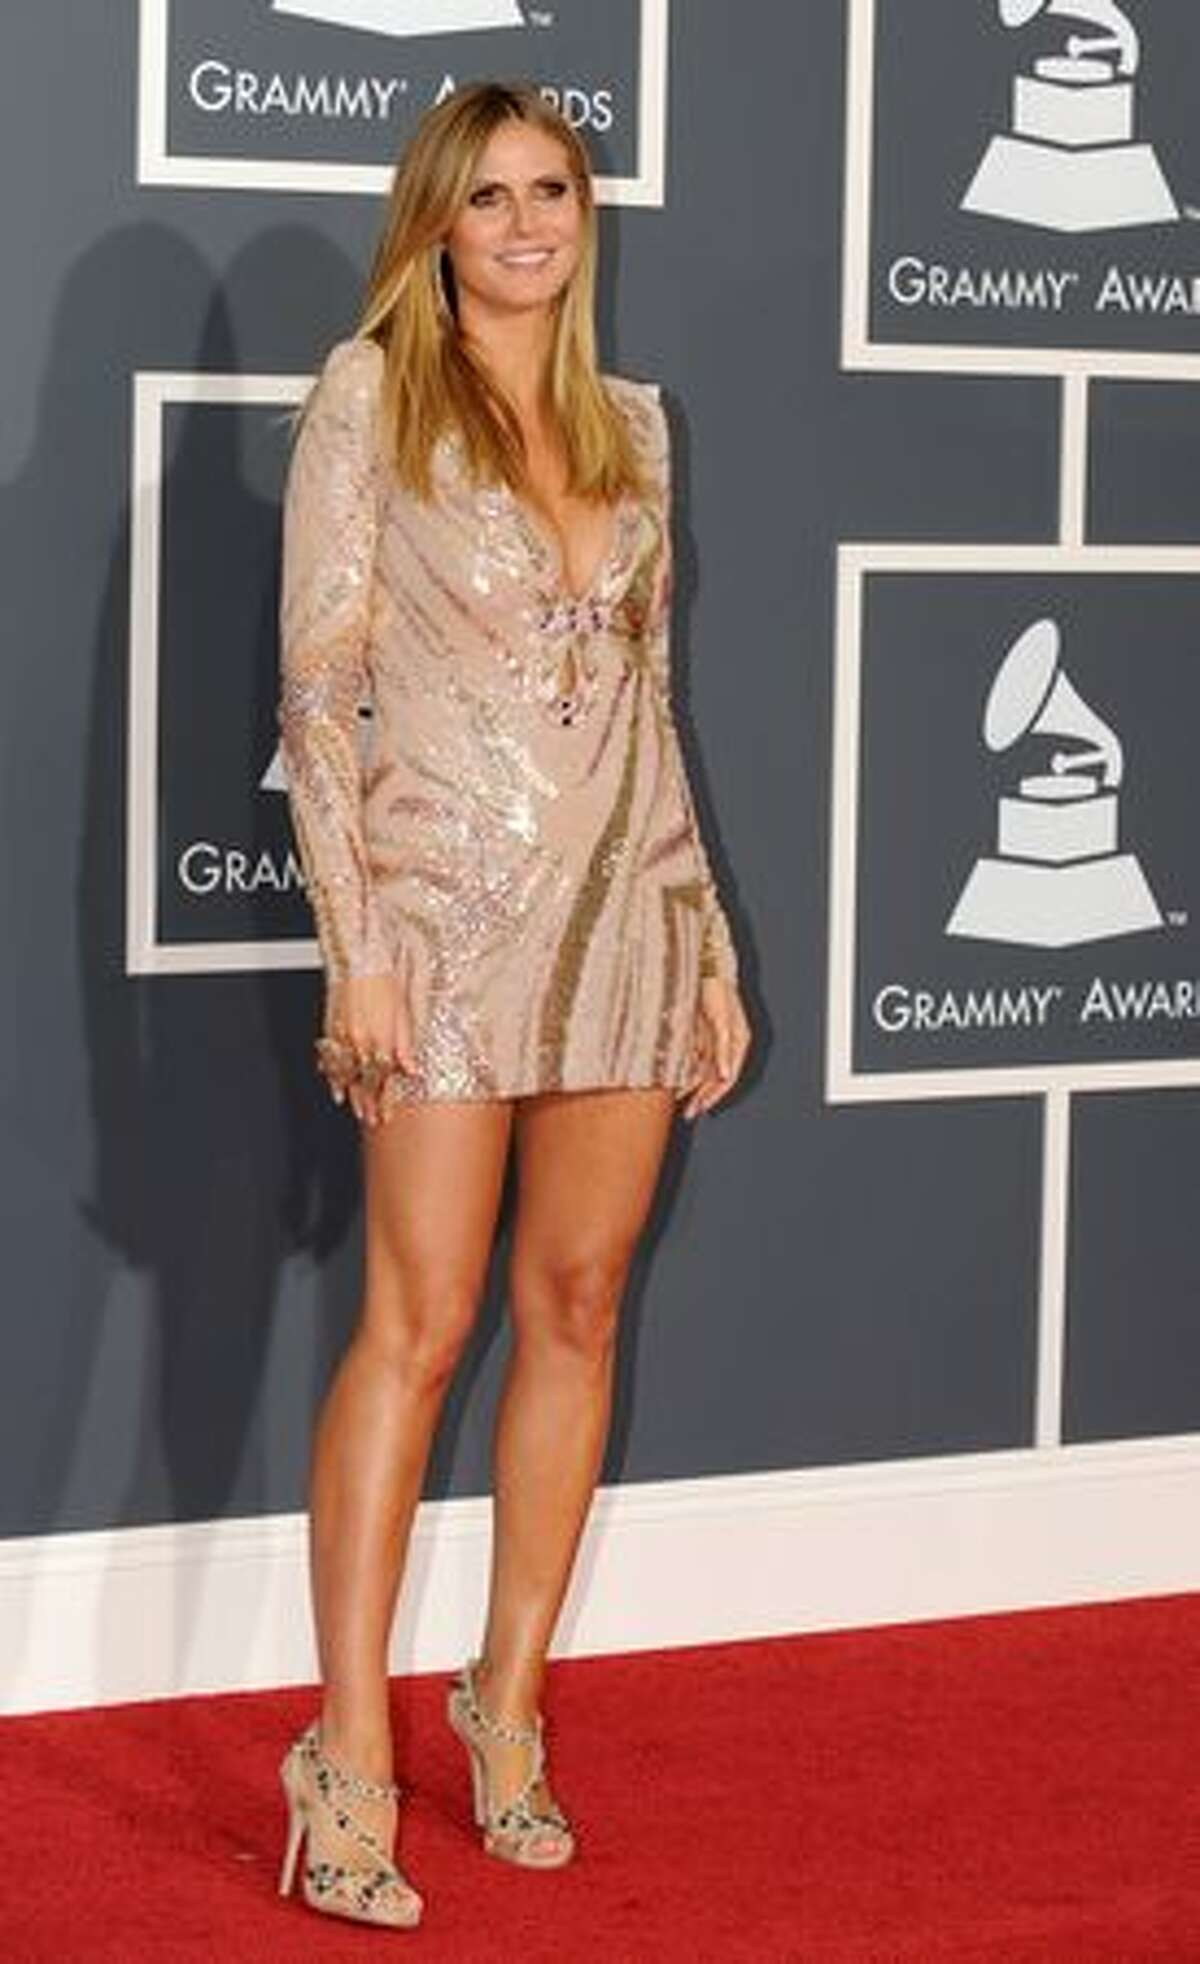 Top model Heidi Klum arrives on the red carpet at the 52nd Grammy Awards in Los Angeles, California on January 31.